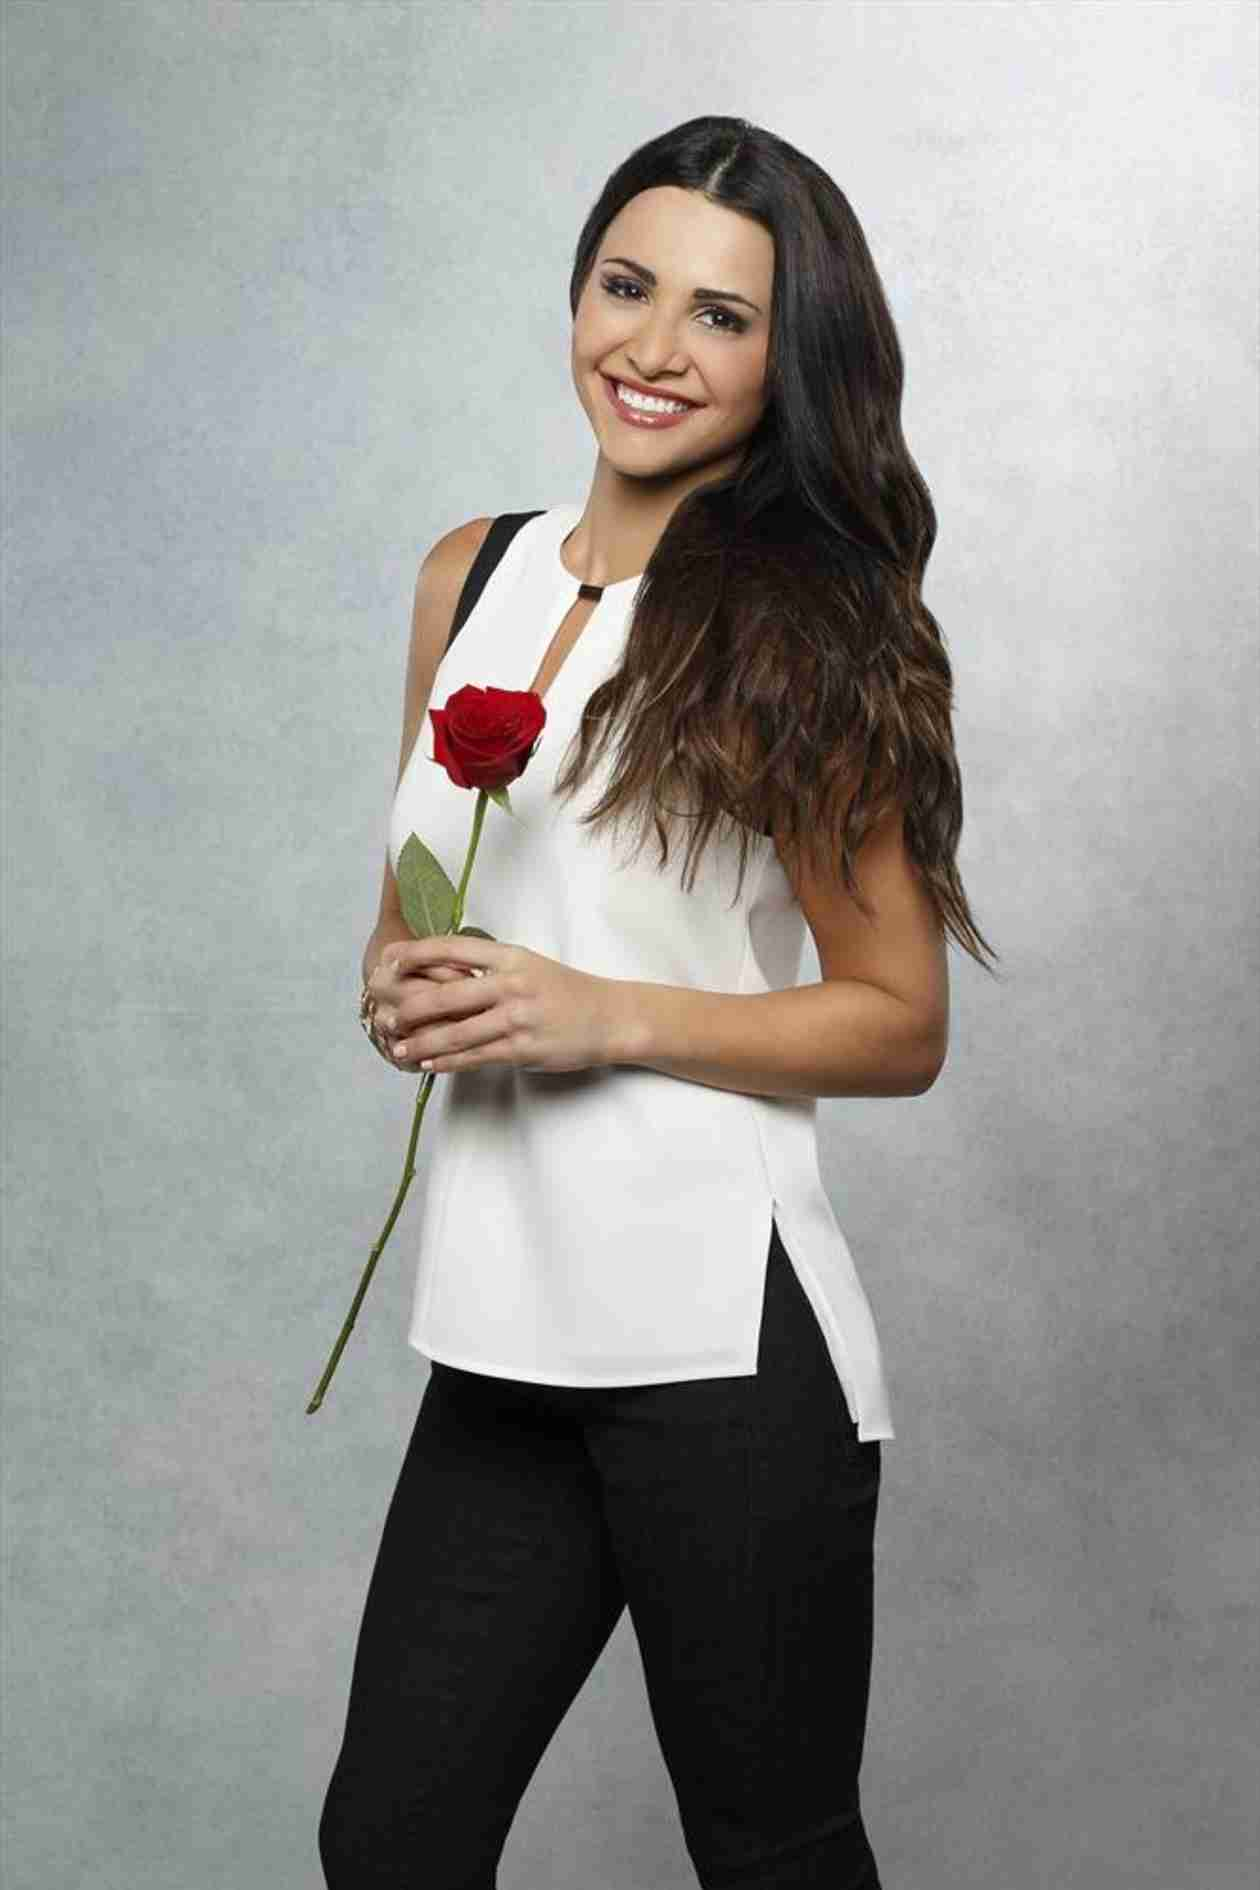 Would Bachelorette Andi Dorfman Get Married on Television? She Says…